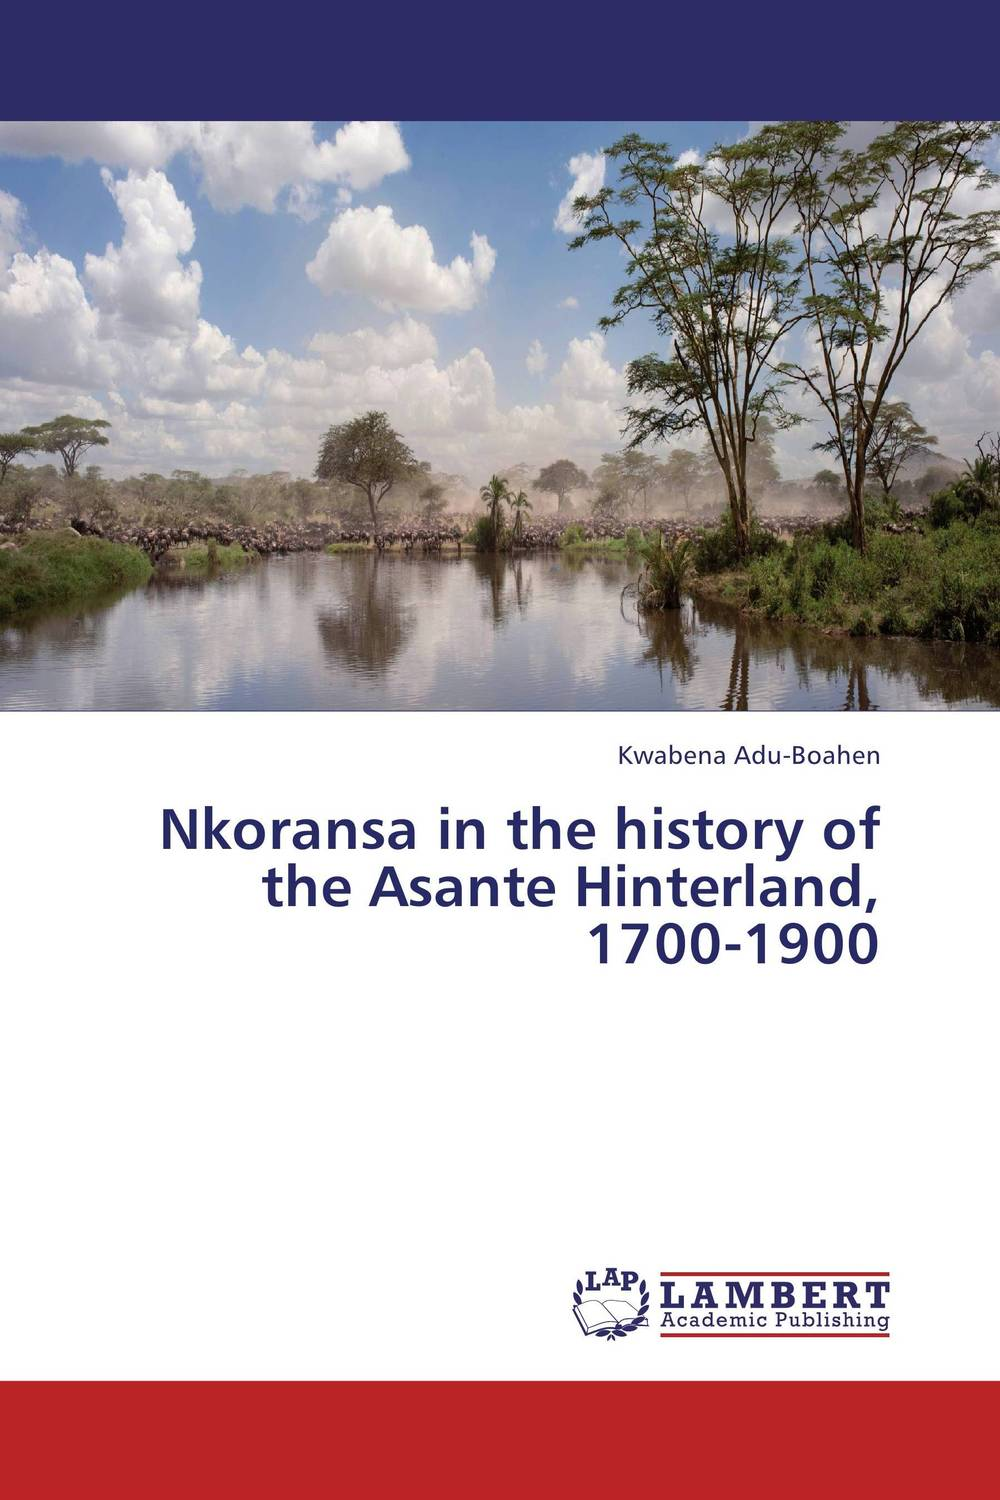 цены  Nkoransa in  the history of the Asante Hinterland, 1700-1900